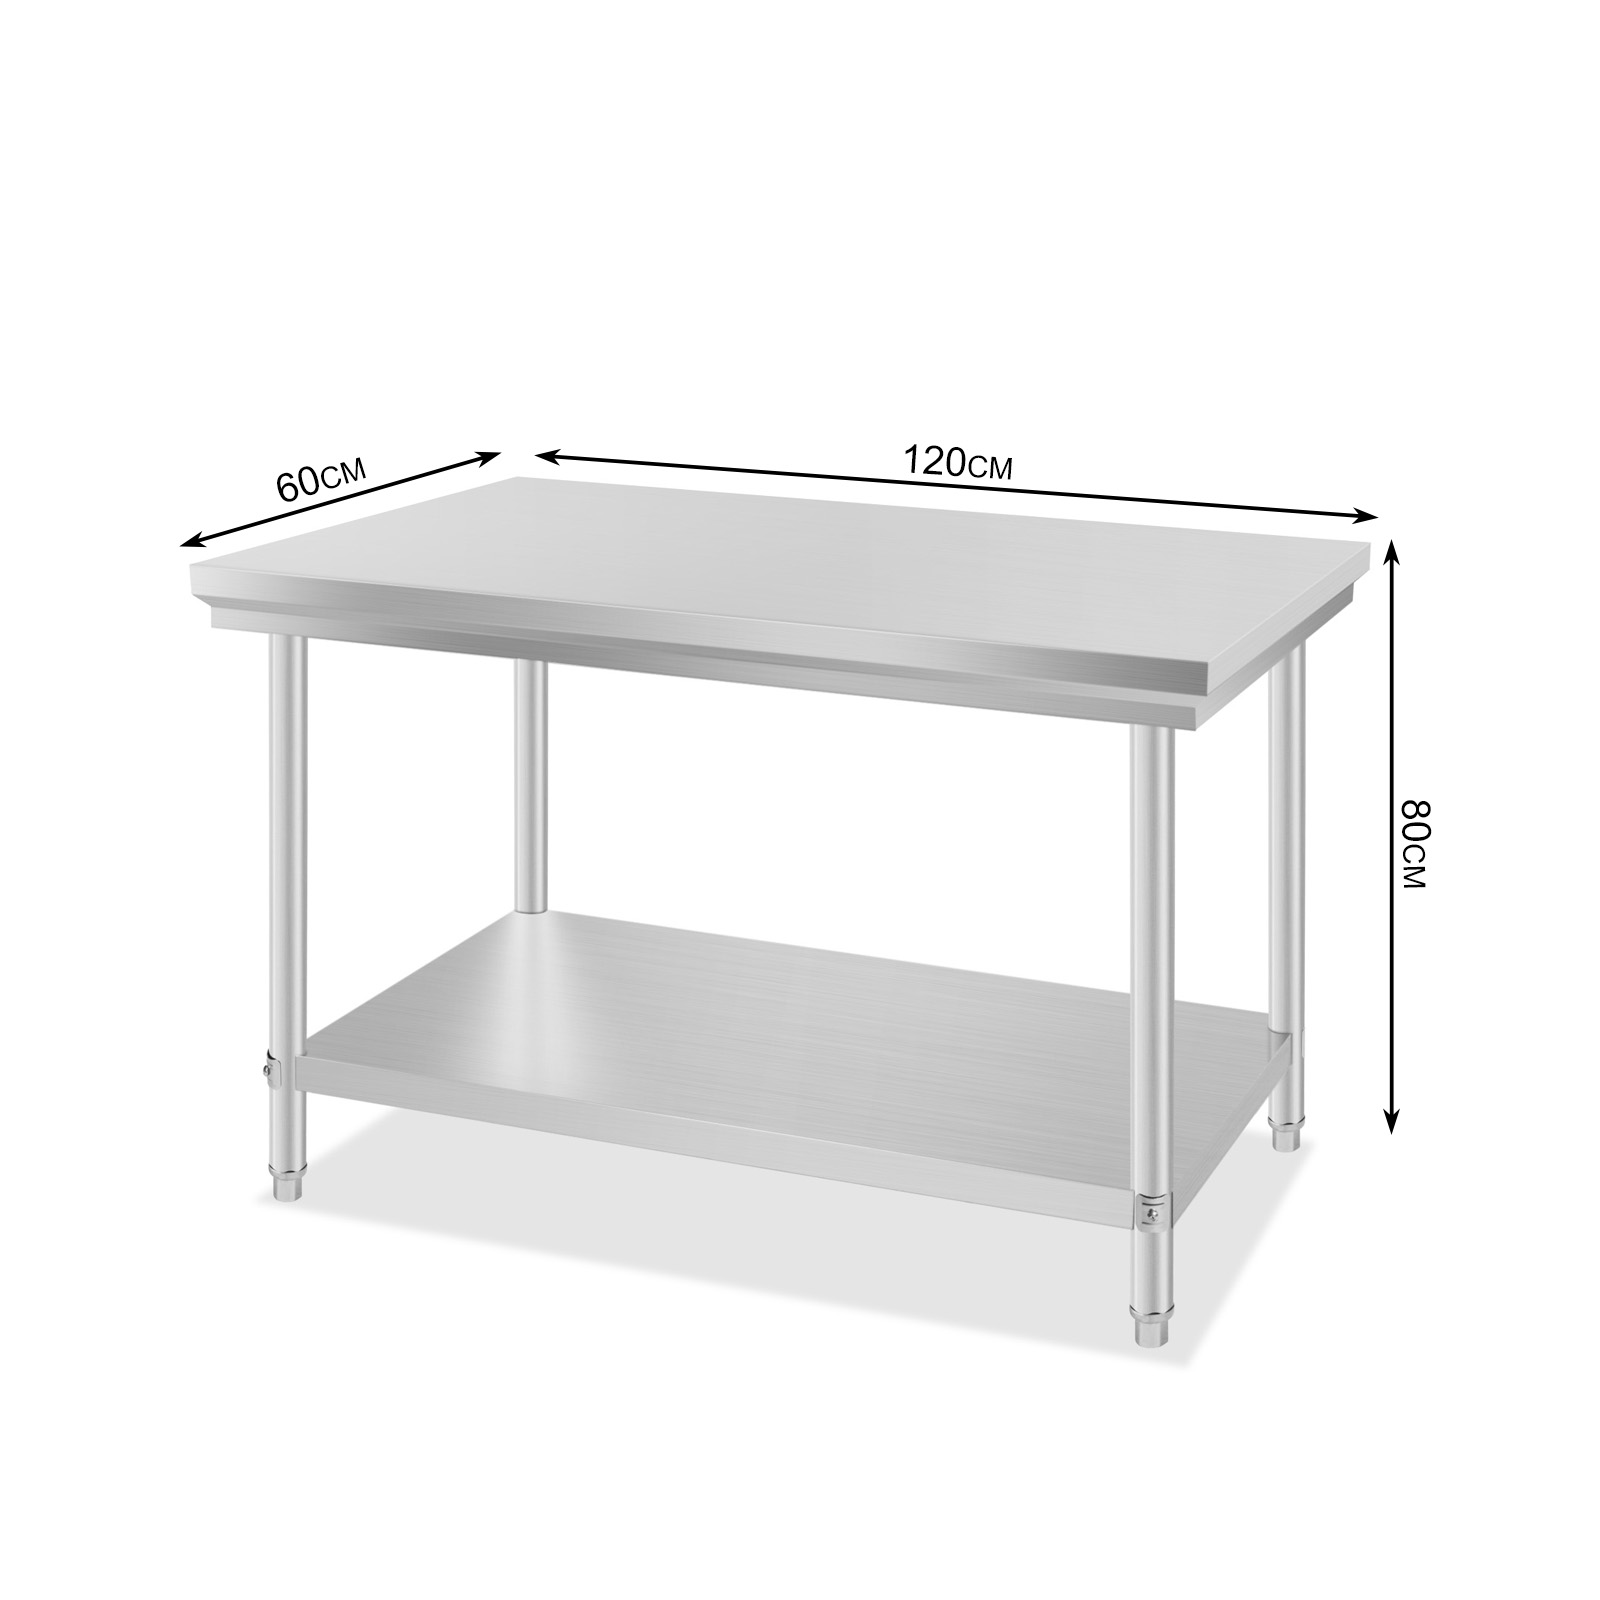 Vevor 201 commercial stainless steel kitchen work bench for Table cuisine 110 x 80